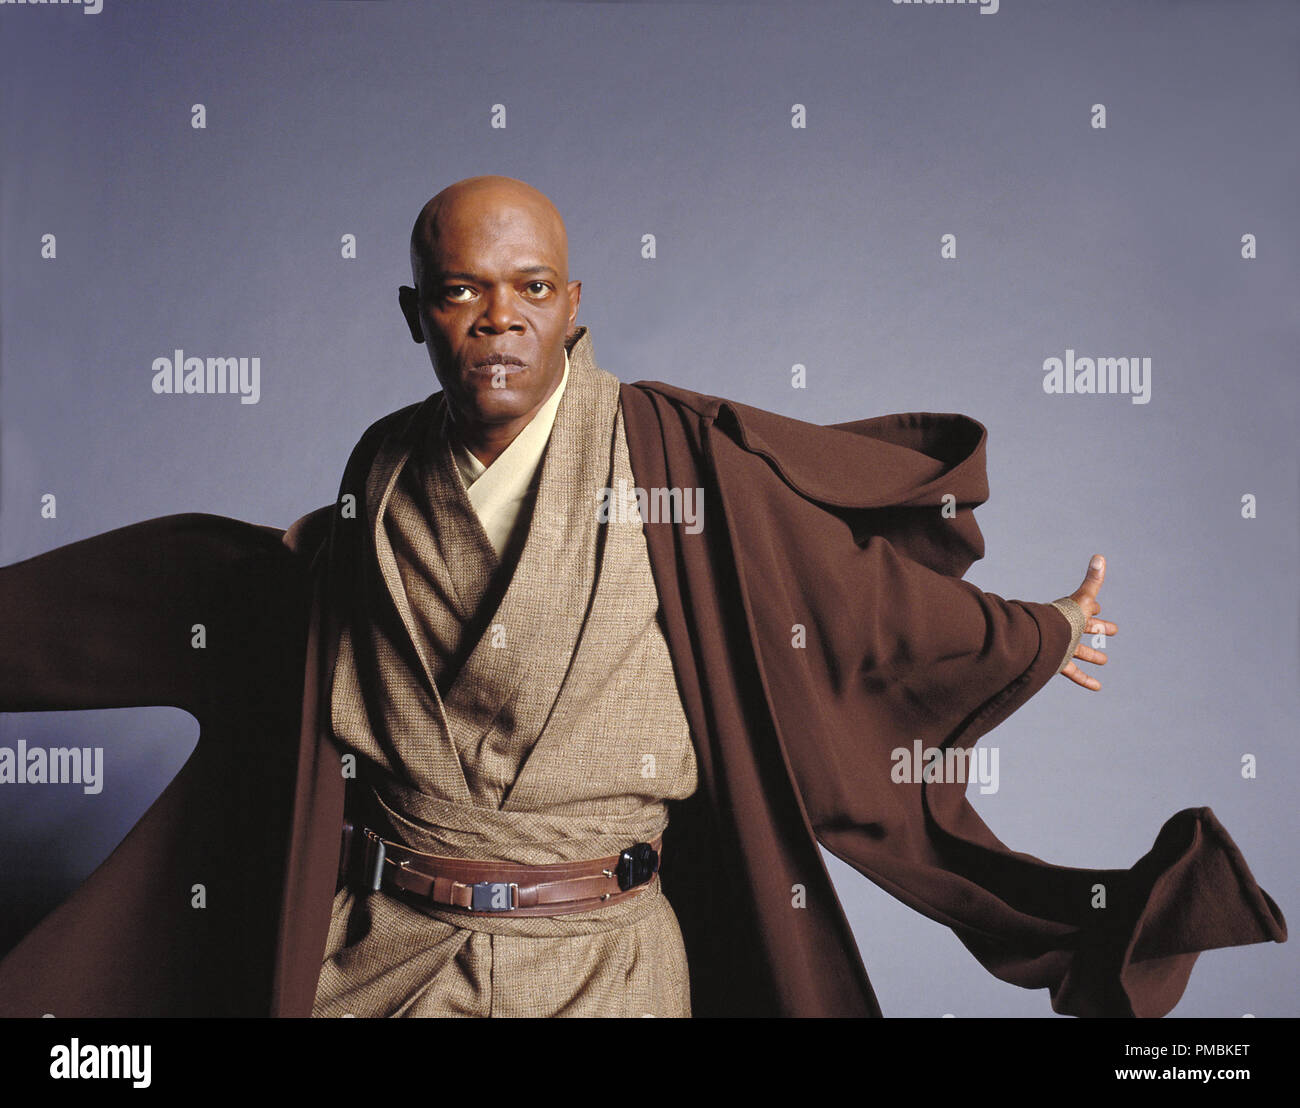 Mace Windu In High Resolution Stock Photography And Images Alamy